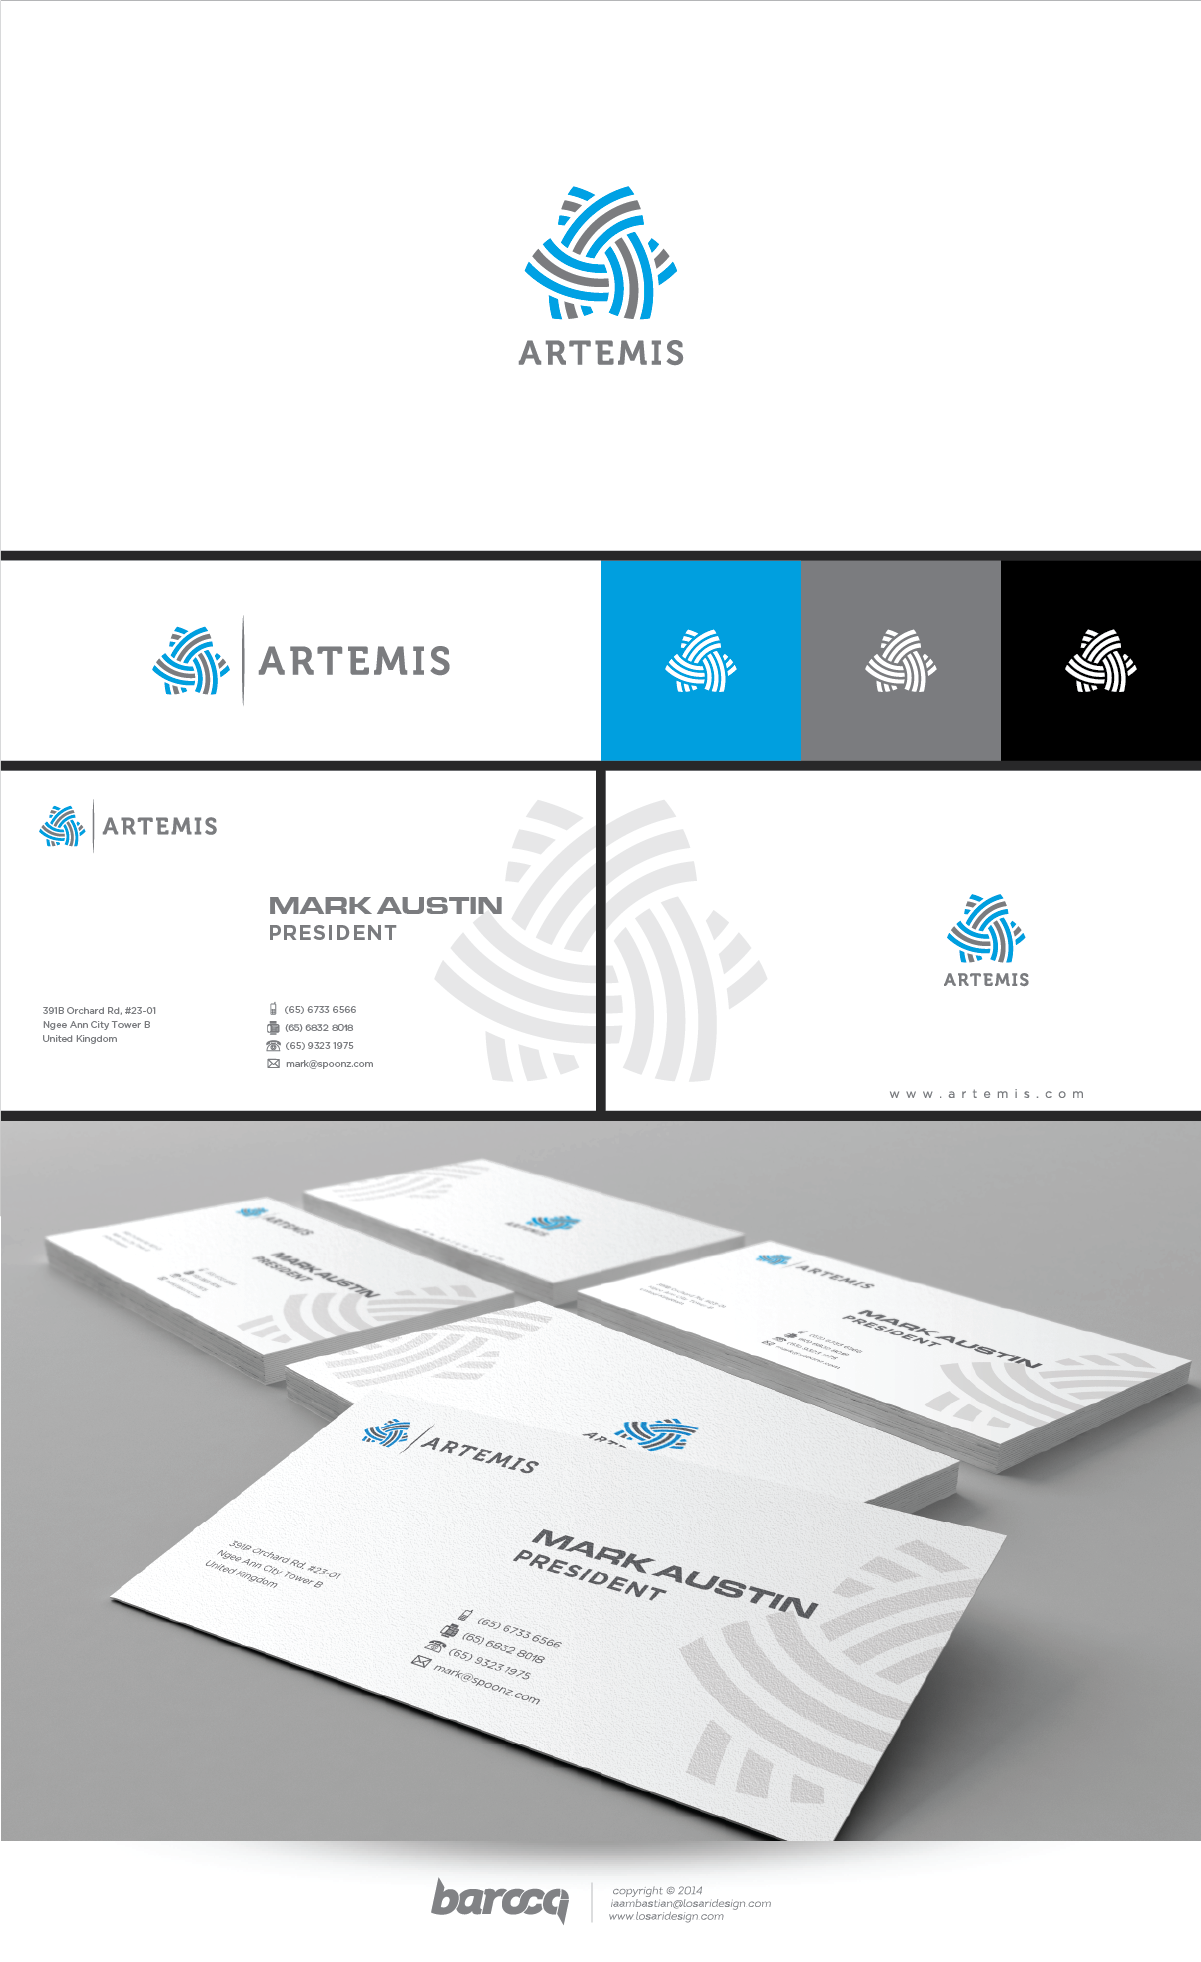 Create a logo and business card for Artemis that make us look big, fresh, and smart.